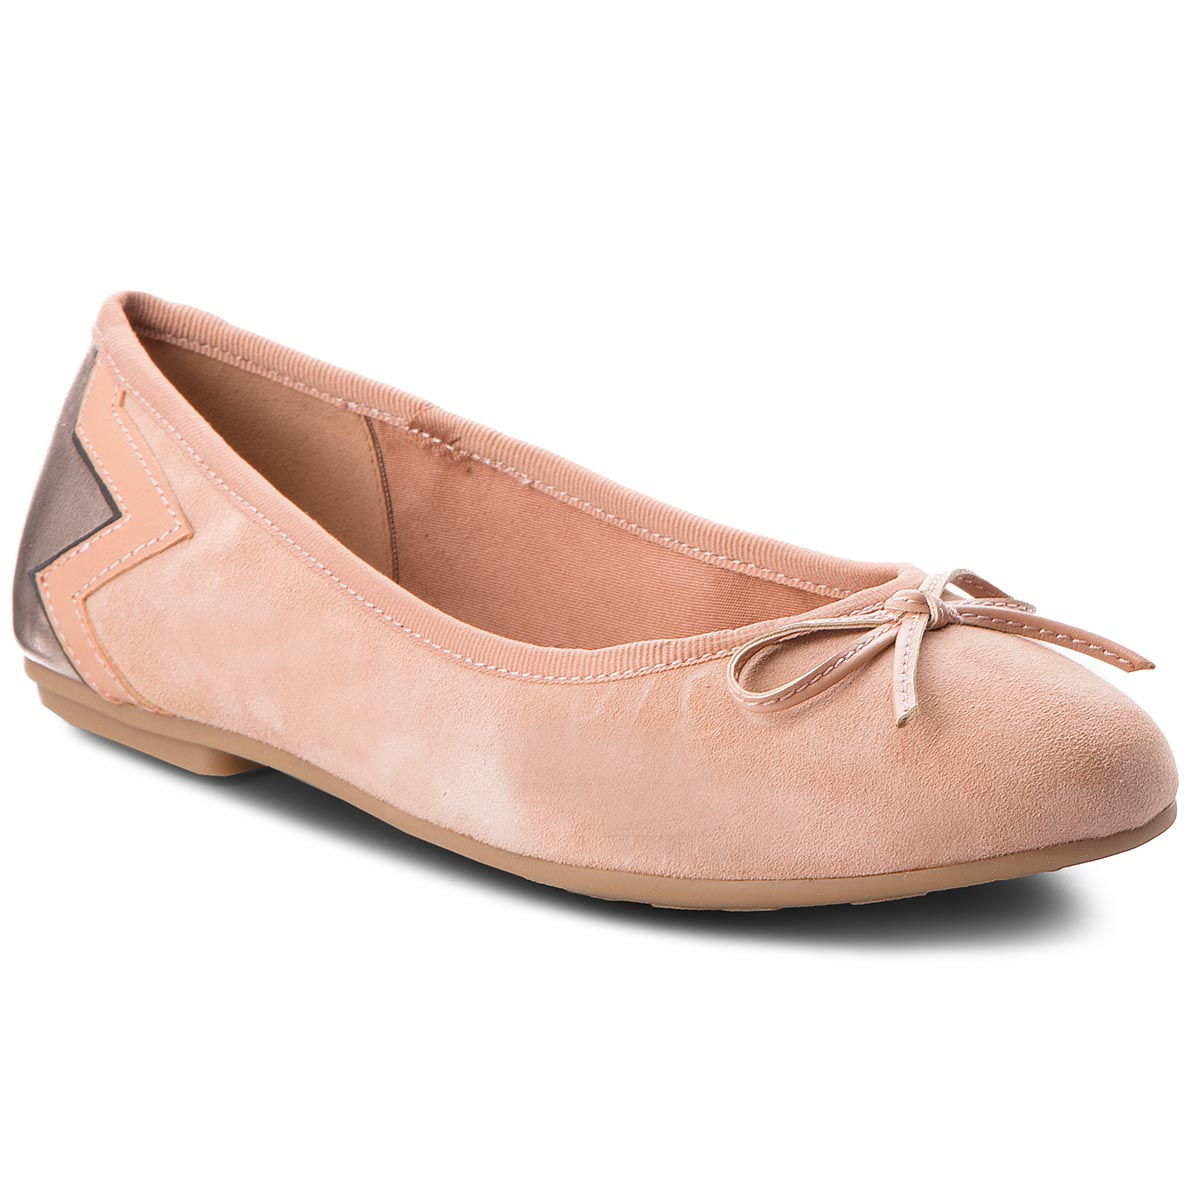 Balerini TOMMY HILFIGER - Elevated Suede Ballerina FW0FW03036 Silky Nude 297